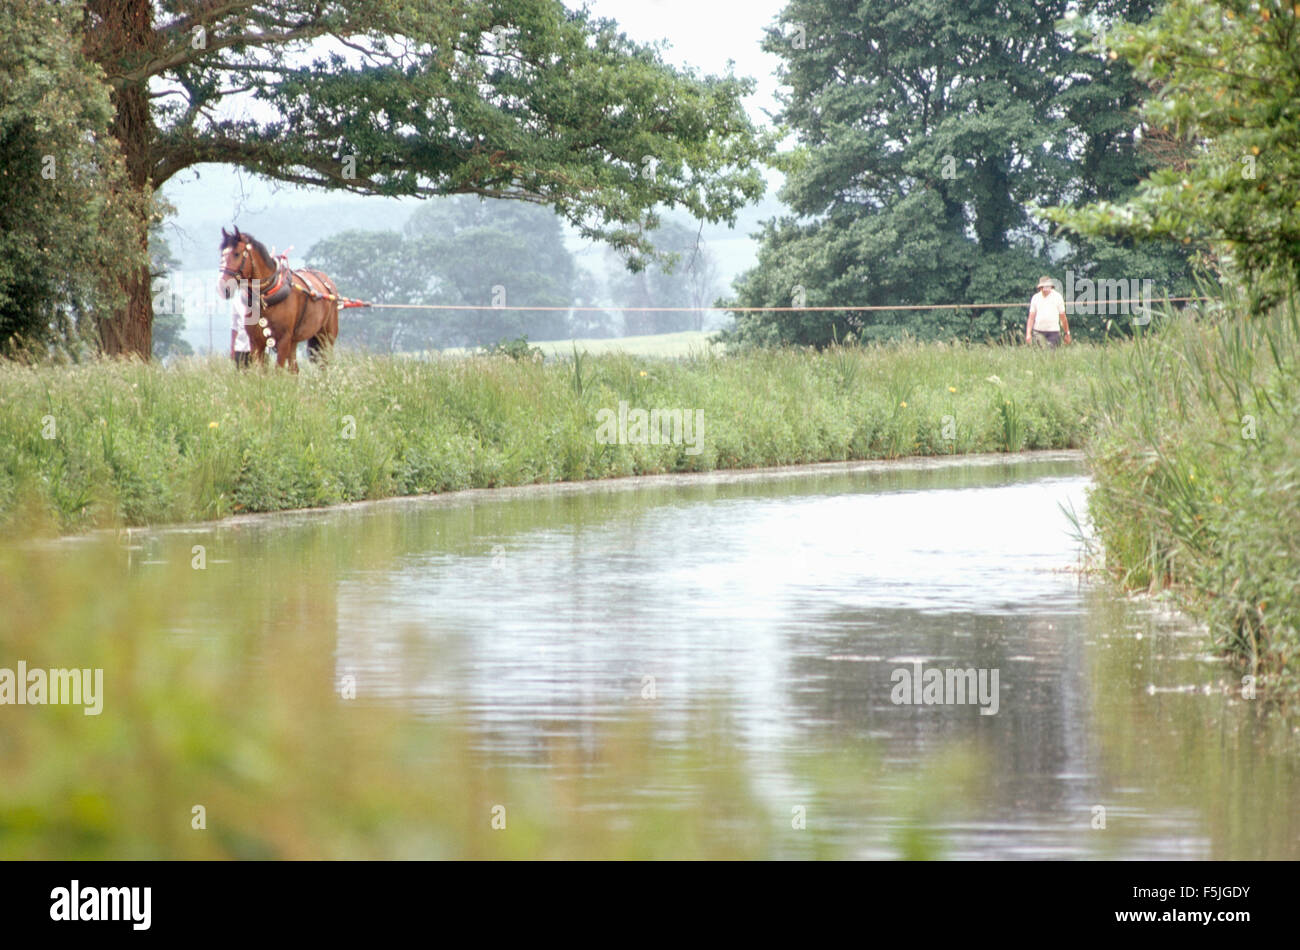 A horse on a canal towpath pulling a narrow boat - Stock Image